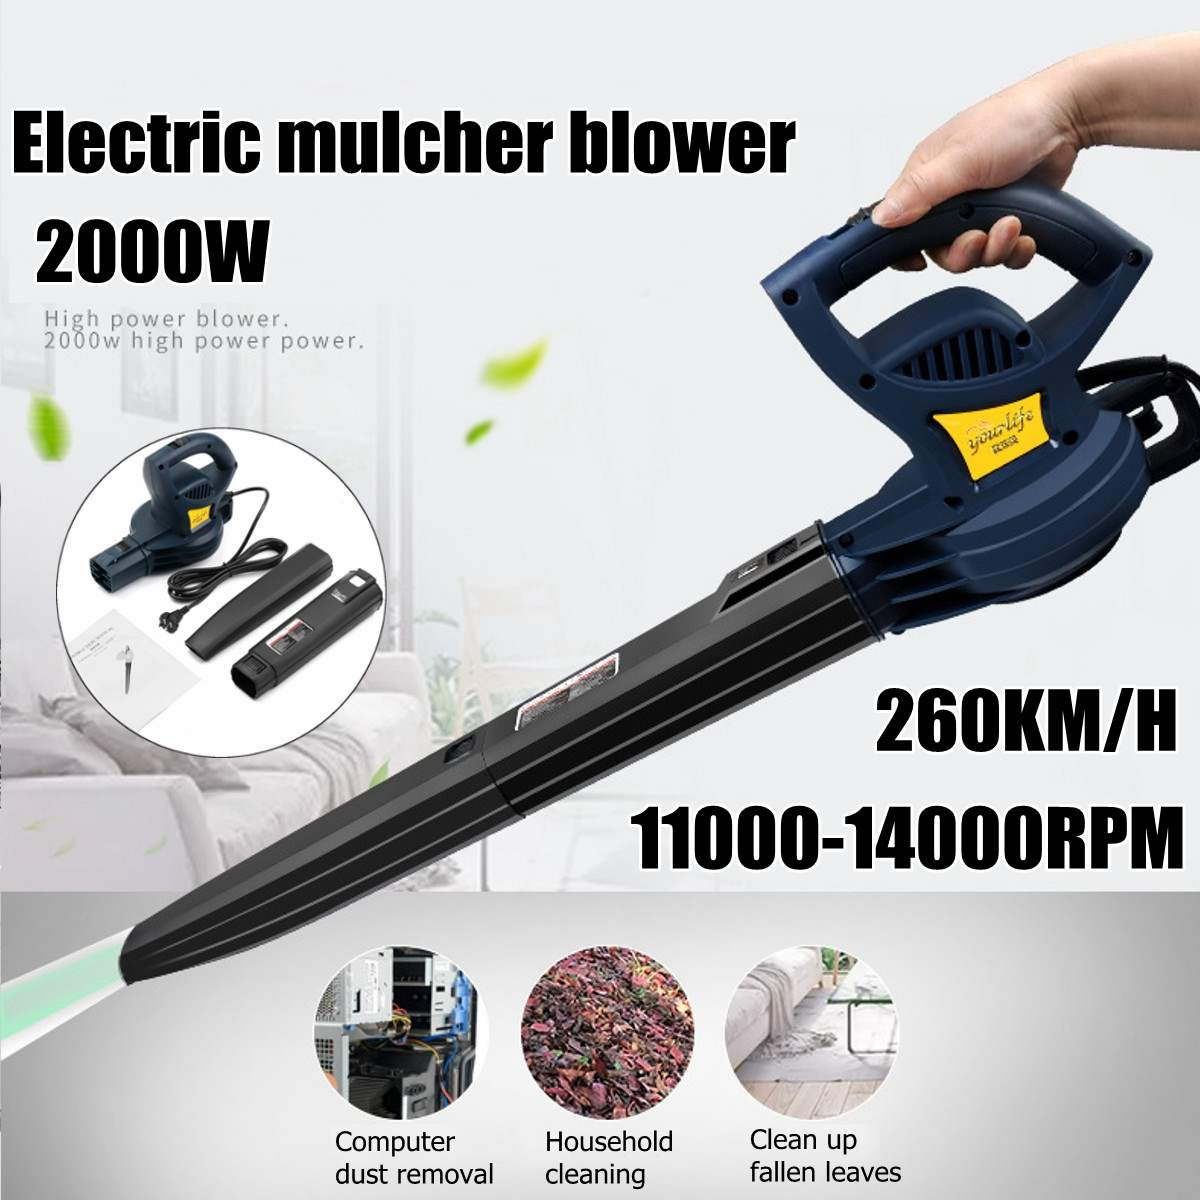 2000W  11000-14000rpm 260km/h Electric Portable Electric Blower Air Blower Air Blowing Machine Dust Leaf Air Blower